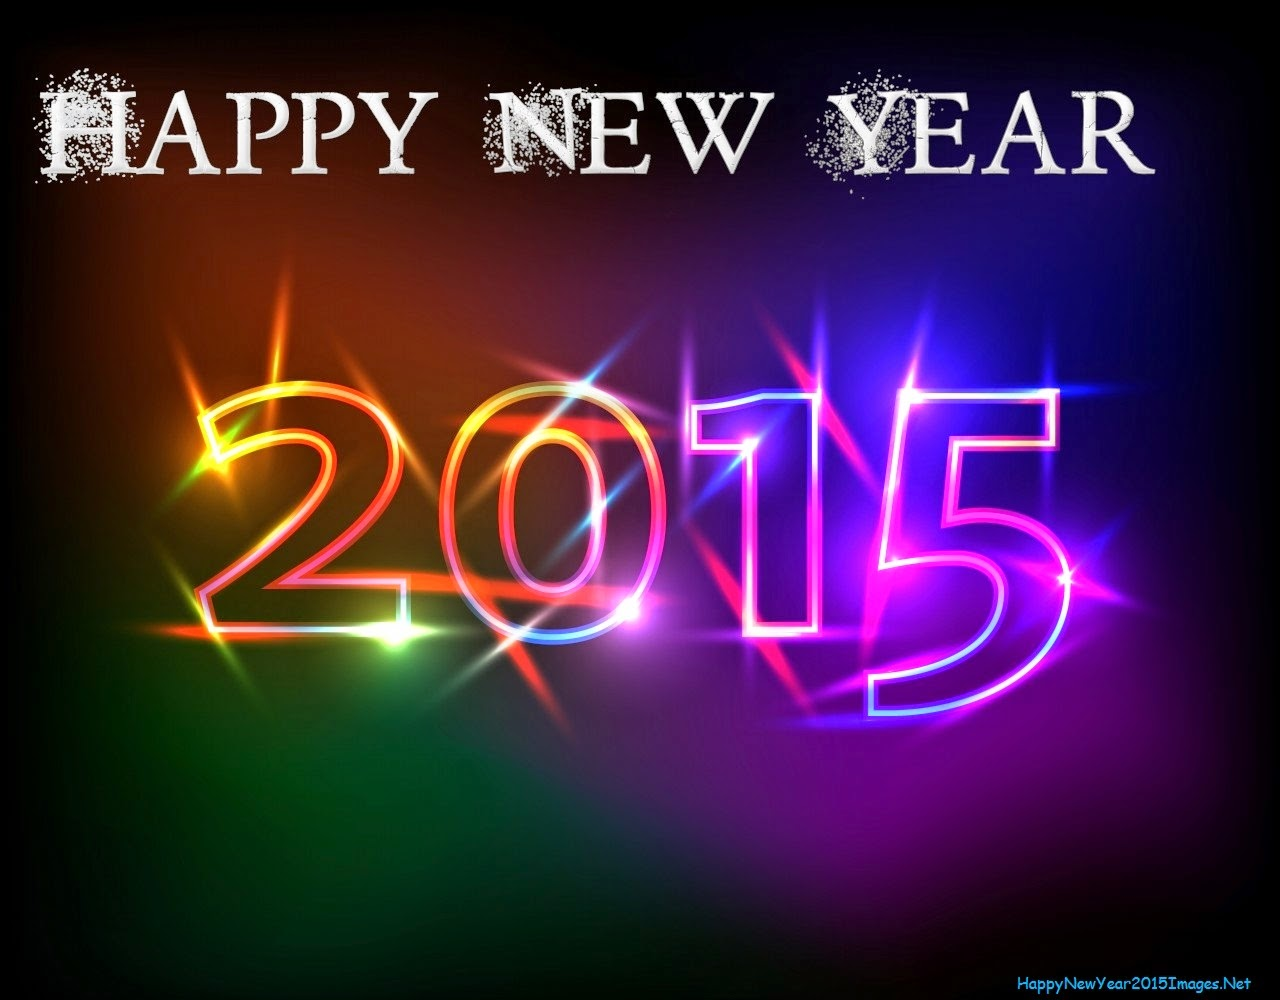 HAPPY NEW YEAR 2015 HD Wallpaper Collection | HAPPY NEW YEAR 2015.